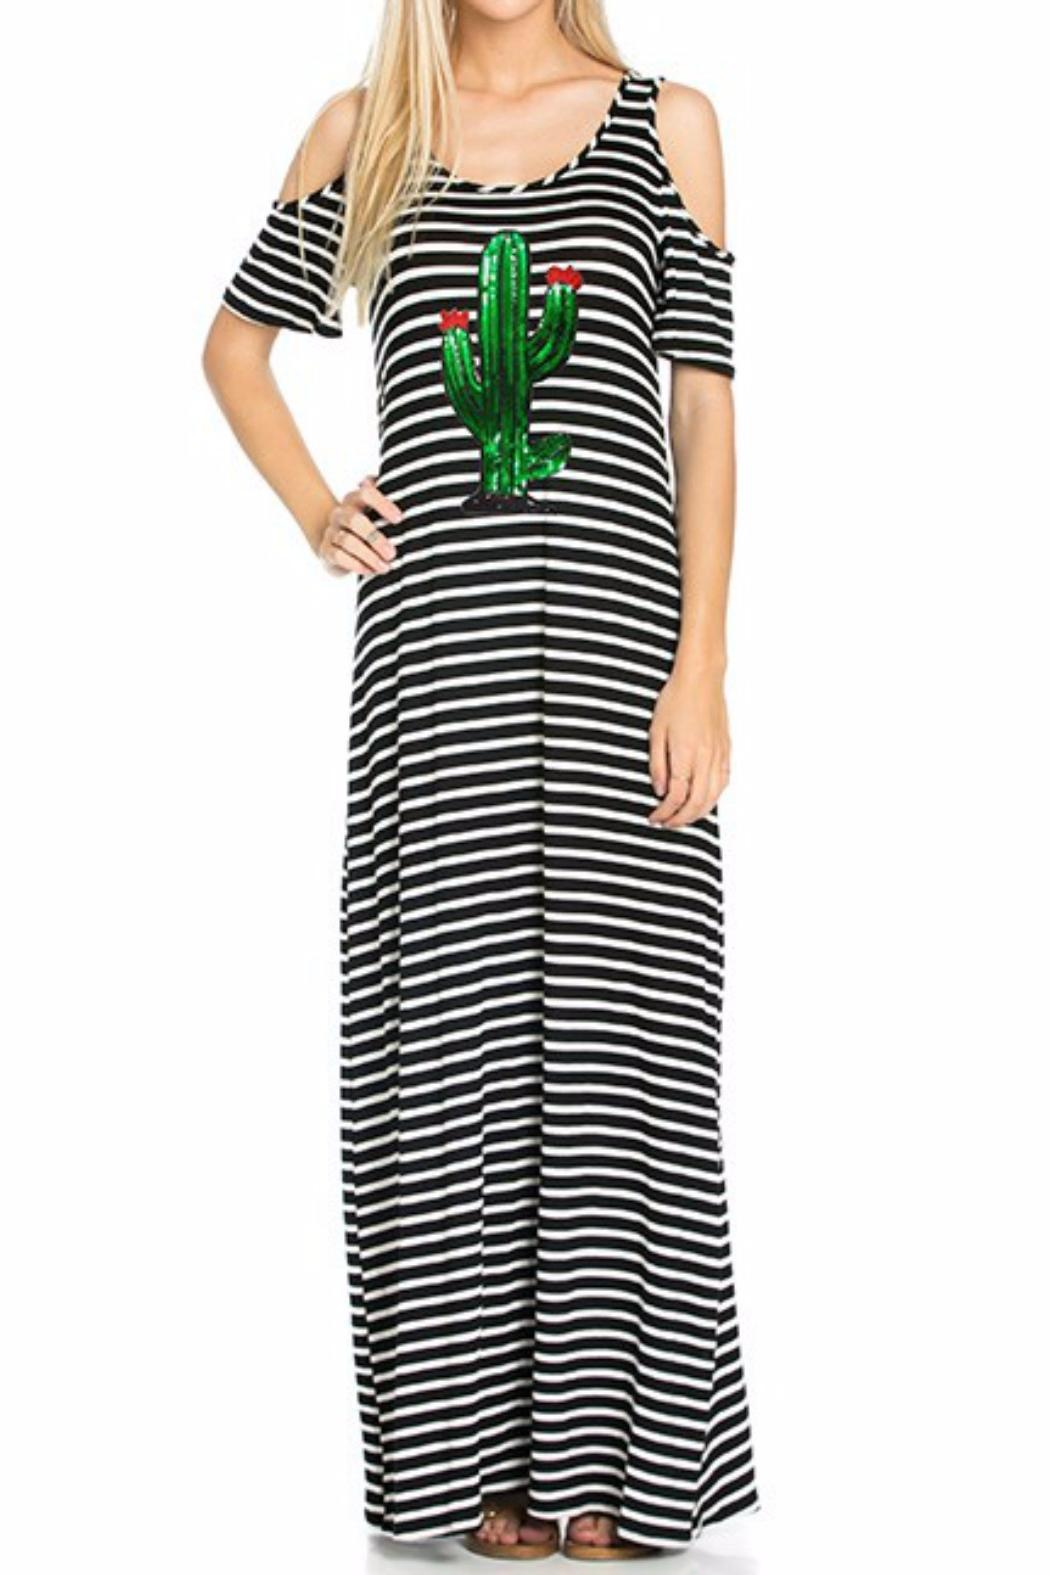 7b9dd4917b Dream Style Cactus Maxi Dress from Texas by Chili Peppers — Shoptiques